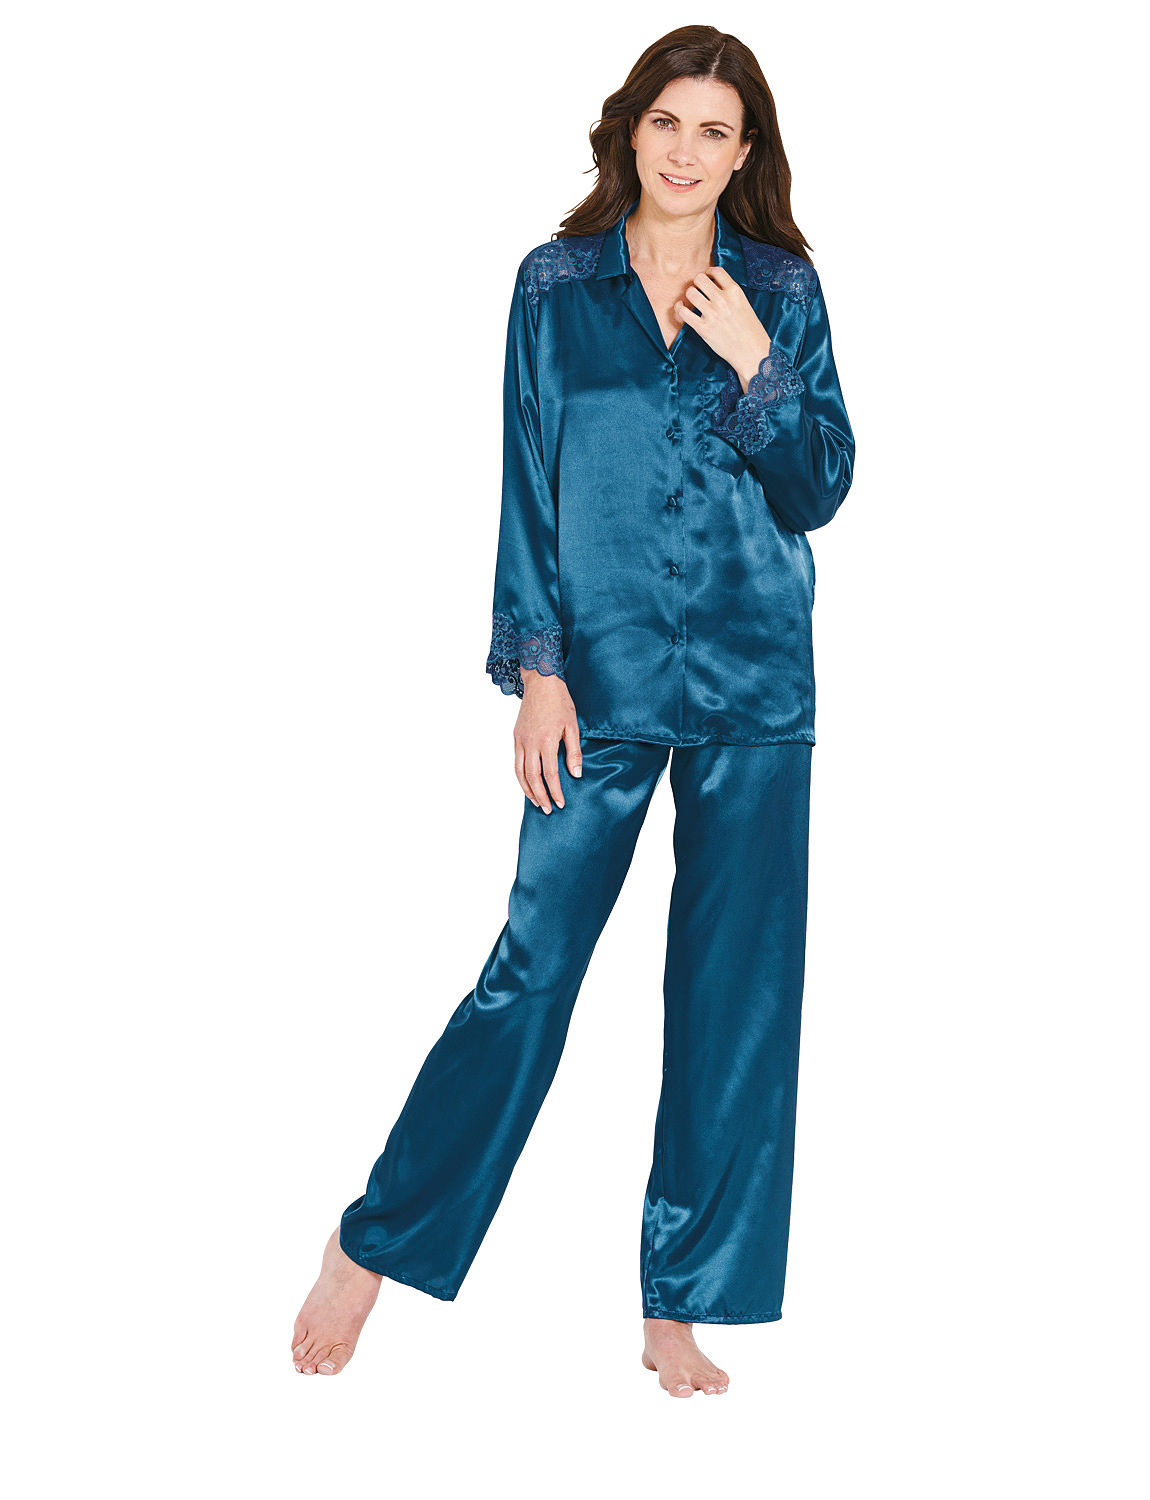 Product Features % Polyester, Premium silk-like satin pajama set for everyday use.